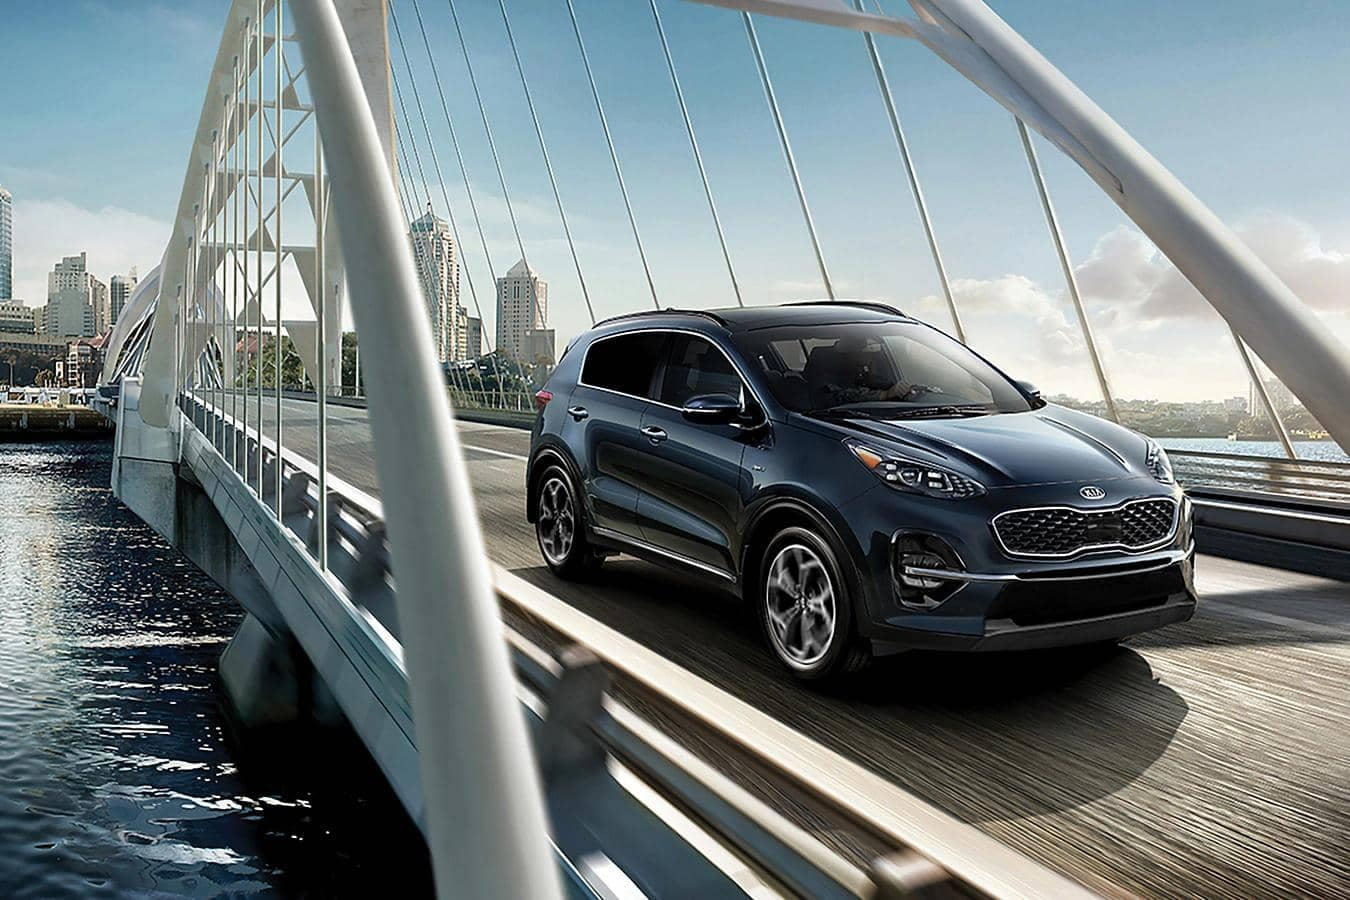 Sportage on Bridge